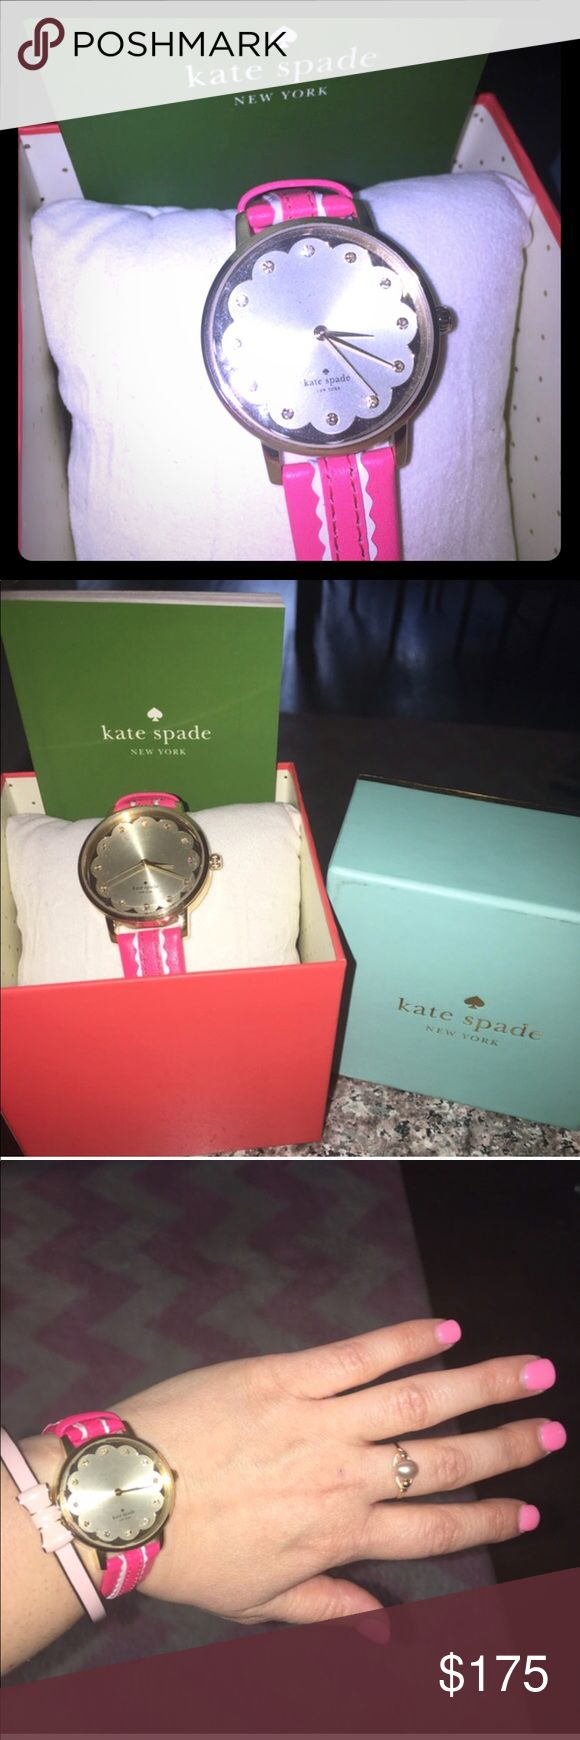 NWT Kate Spade ♠️Pink & White Leather Watch Gift NWT Kate Spade ♠️ leather watch, gold time piece with pink and white leather strap! Perfect gift for your daughter, granddaughter, girlfriend, or special lady in your life!! Selling because it was a gift from an Ex so I never wear it... but some lady definitely deserves to give this adorable watch a good home! :) kate spade Accessories Watches